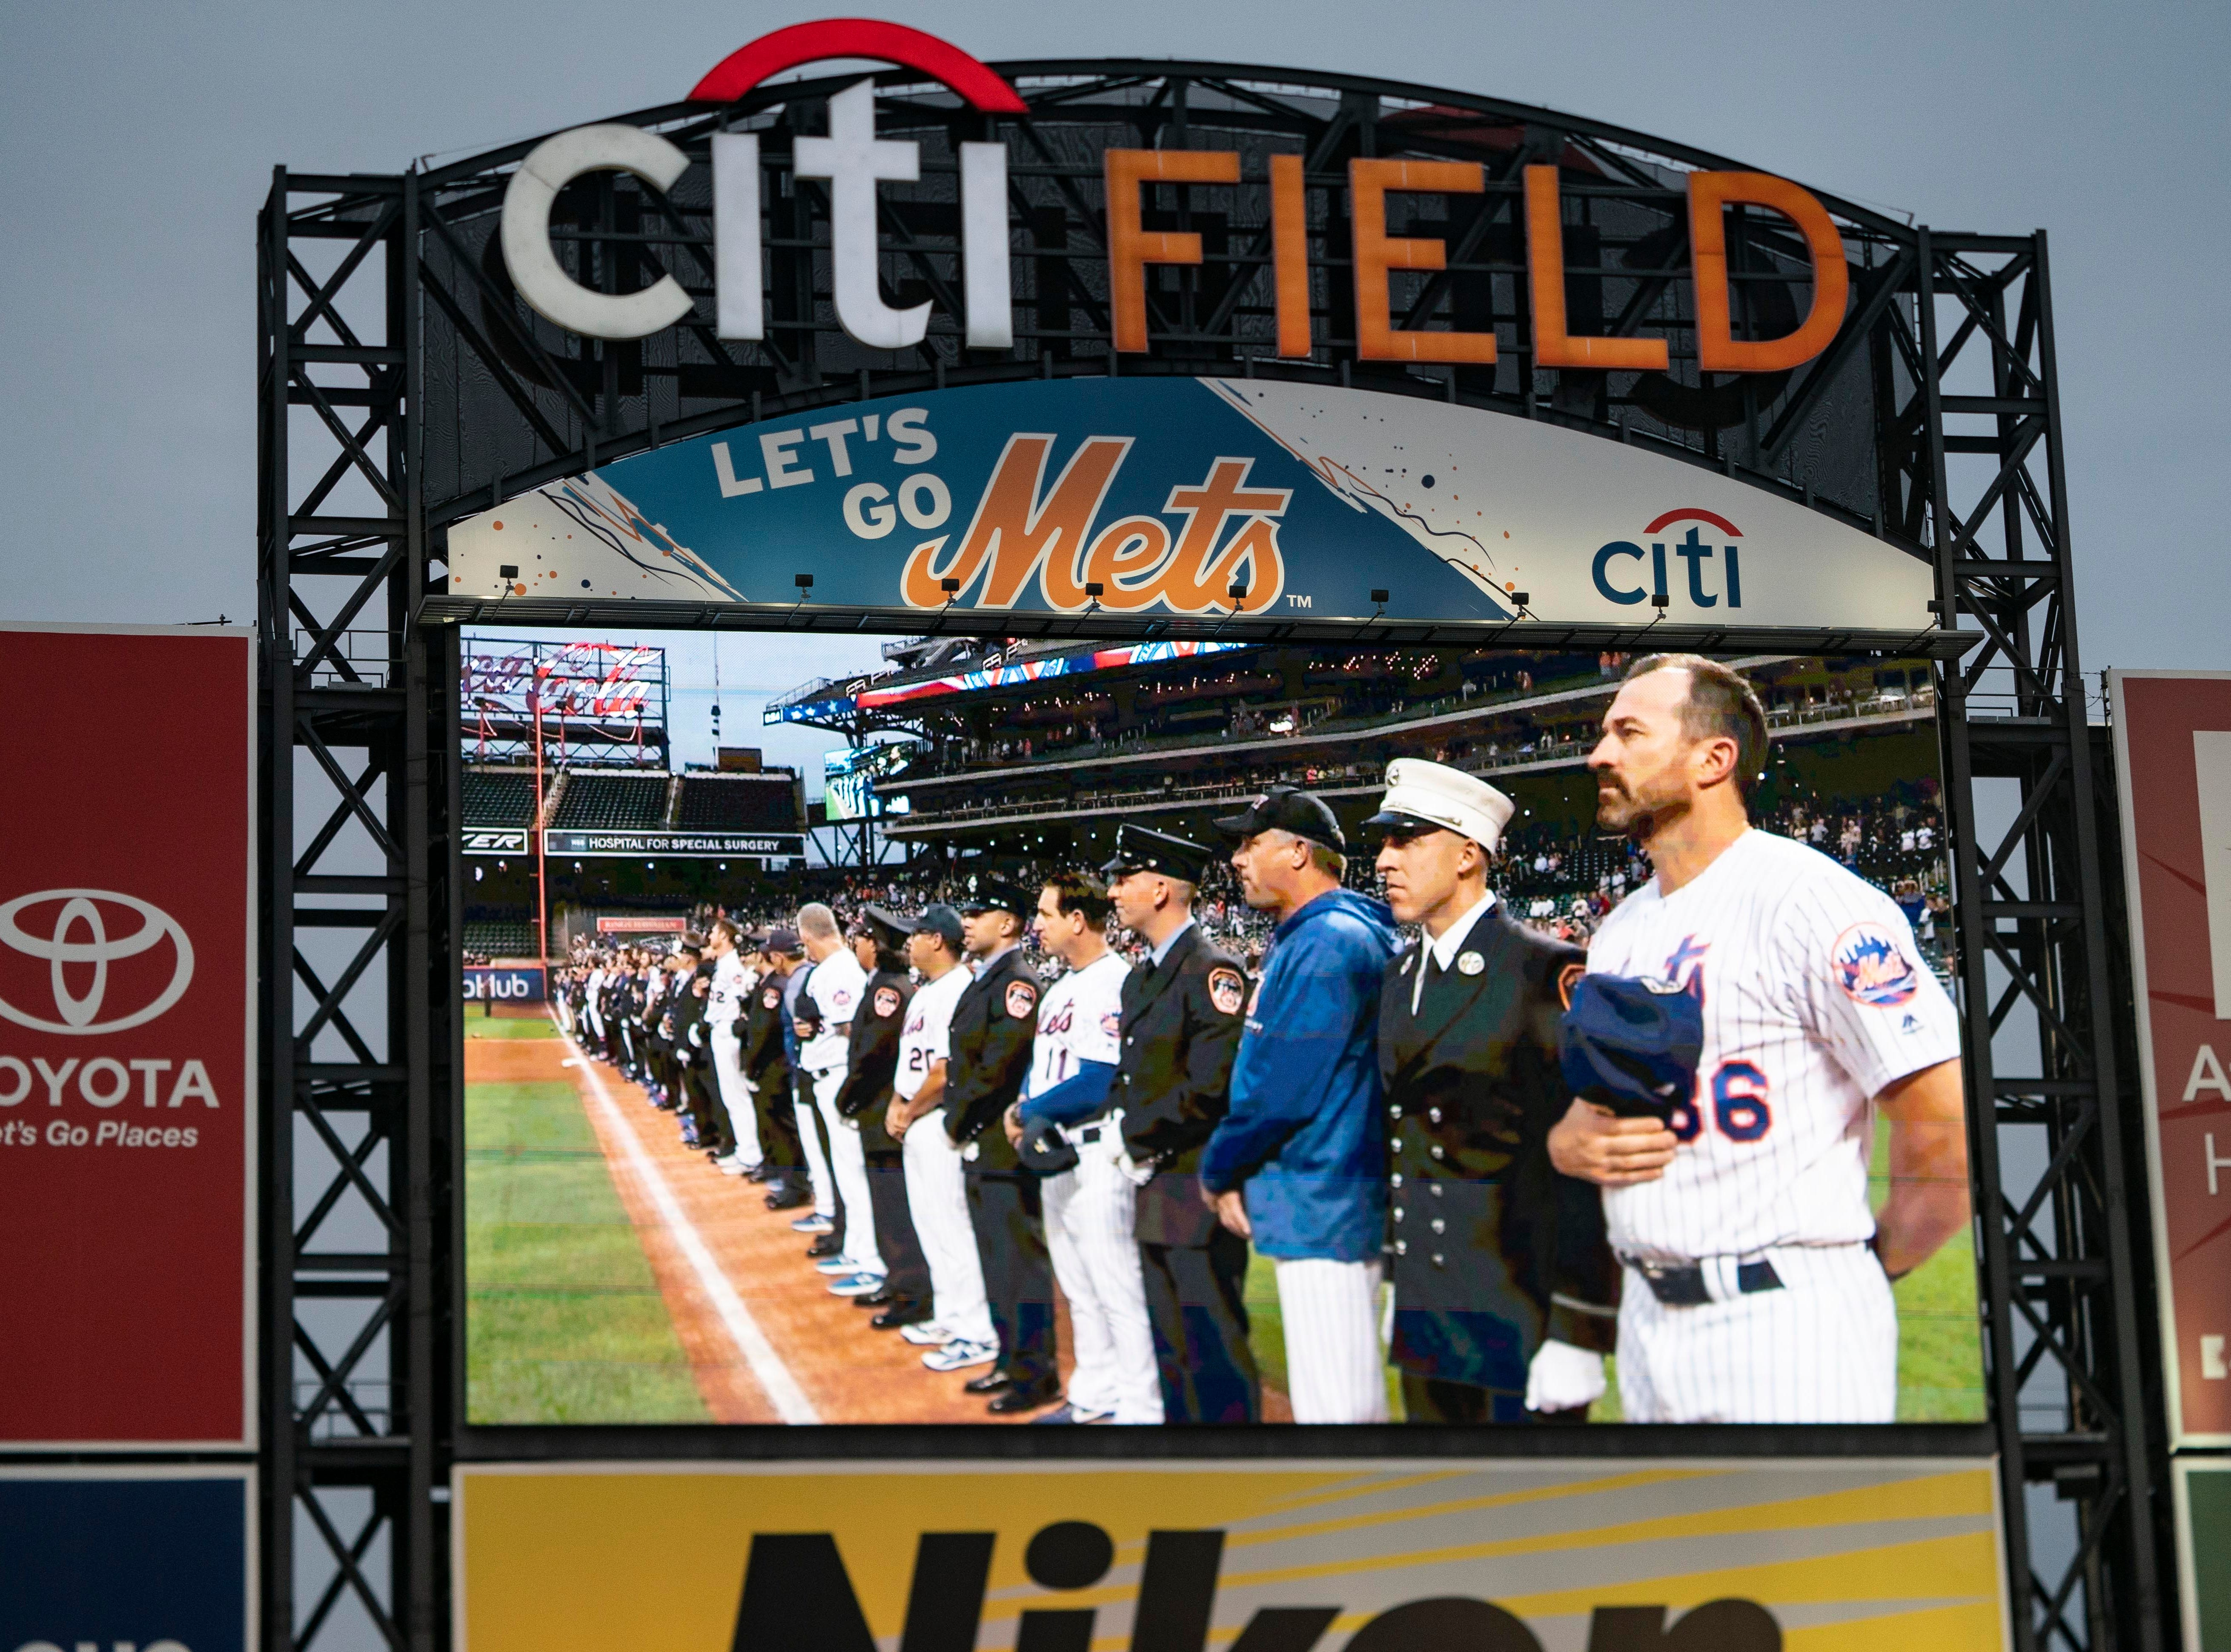 Sep 11, 2018; New York City, NY, USA; Members of New York City first responders stand on the field with the ball players for pregame ceremonies prior to the game at Citi Field.